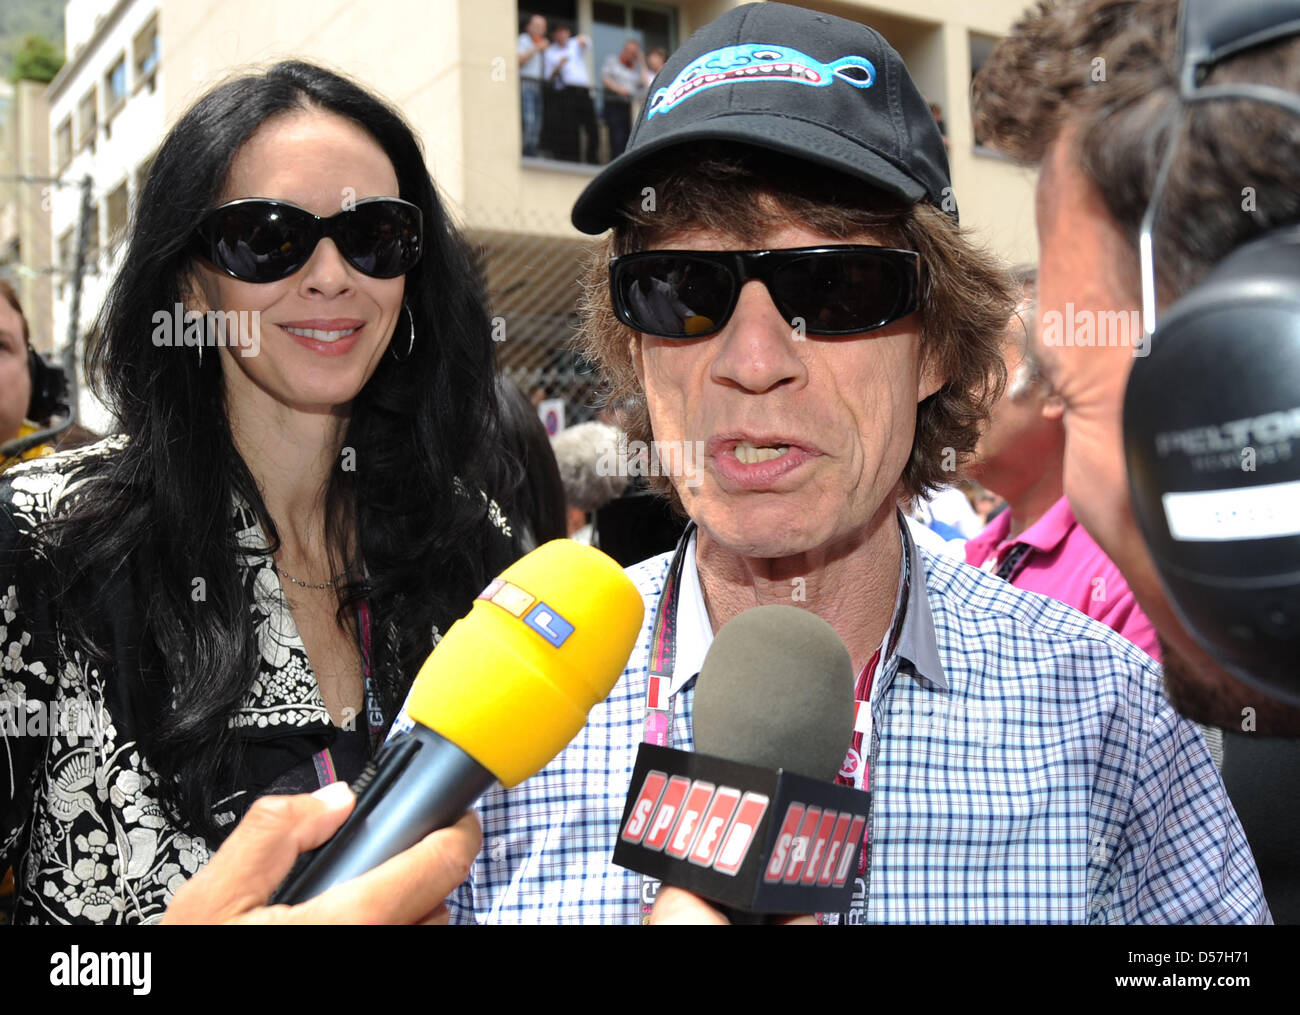 Mick Jagger Of The Rolling Stones Smiles In The Grid Of The 2010